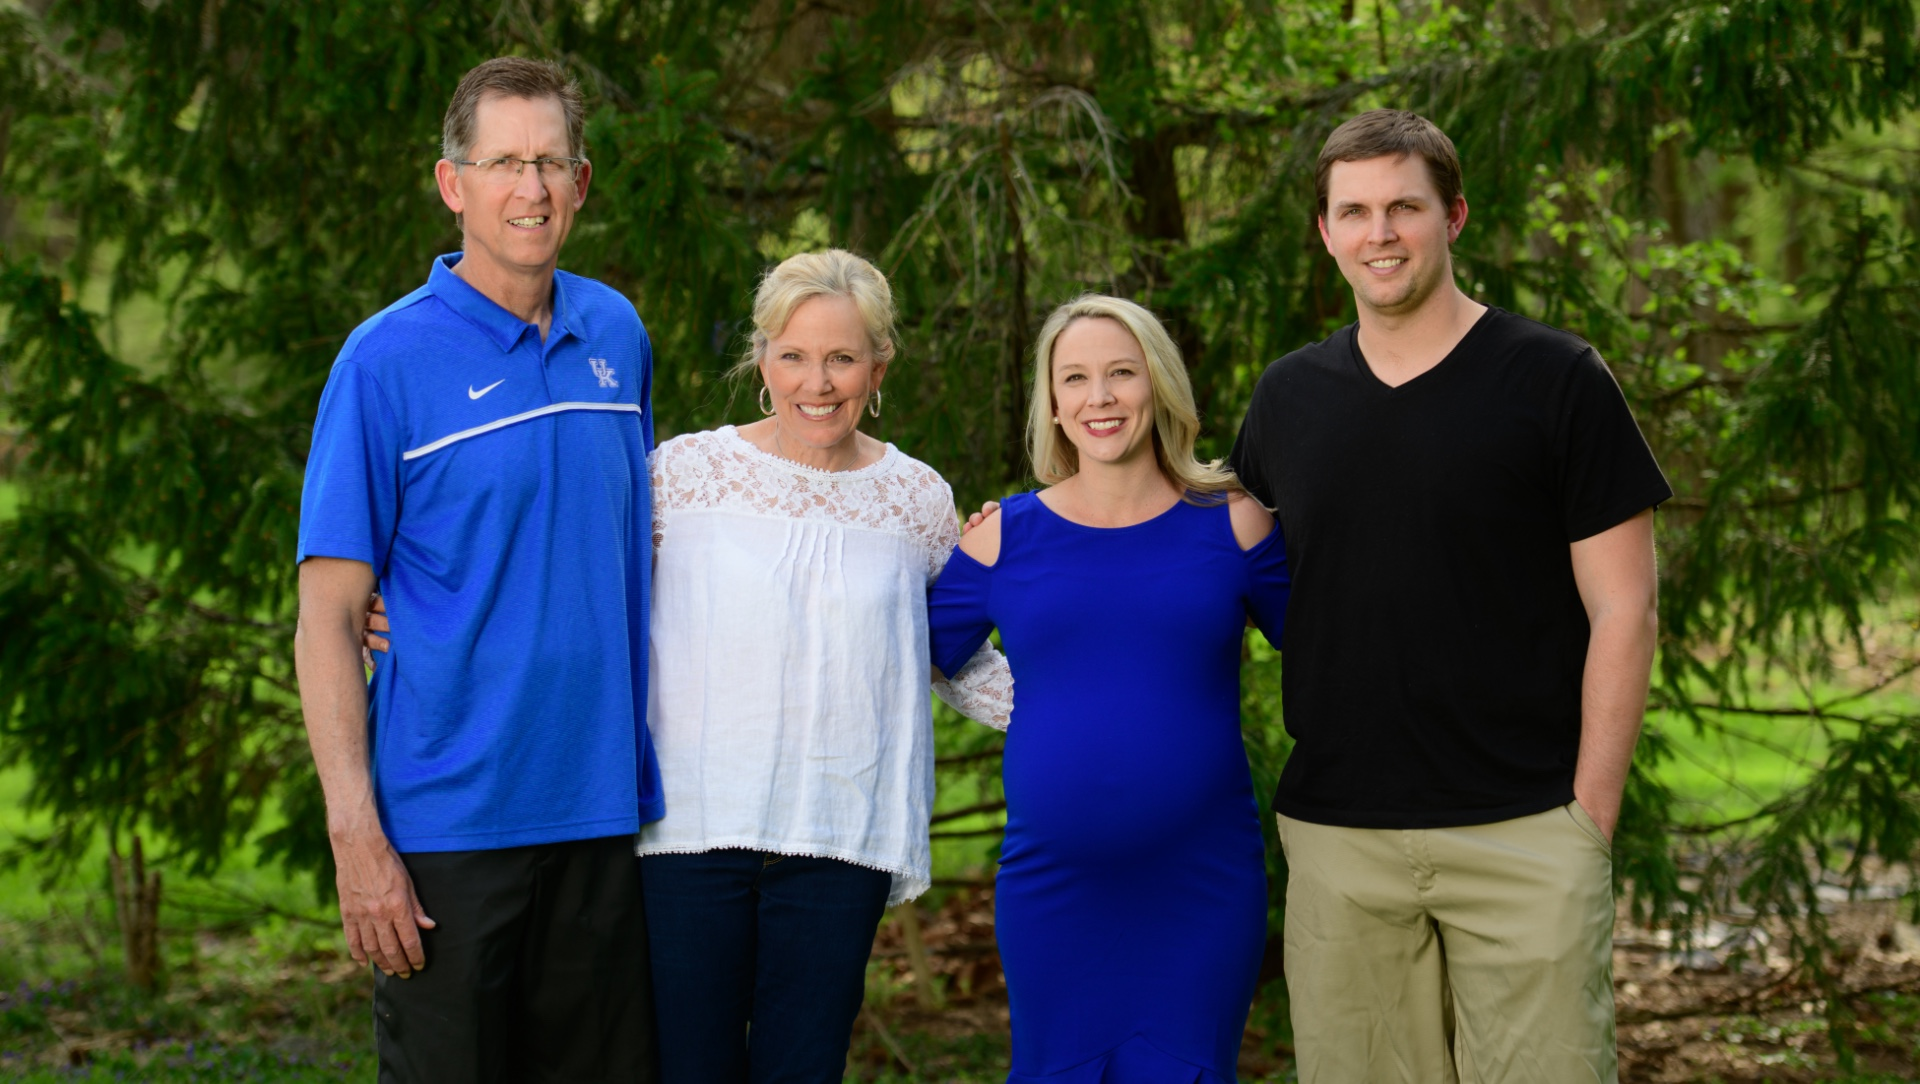 Coach O'Connor and her family gather around to take a picture outside. Beside her is her brother, Trent Martin, a white male in a black shirt; her mother, Donna Martin, an older white woman with blonde hair, wearing a white blouse; and her father, an older white man wearing a blue UK shirt.